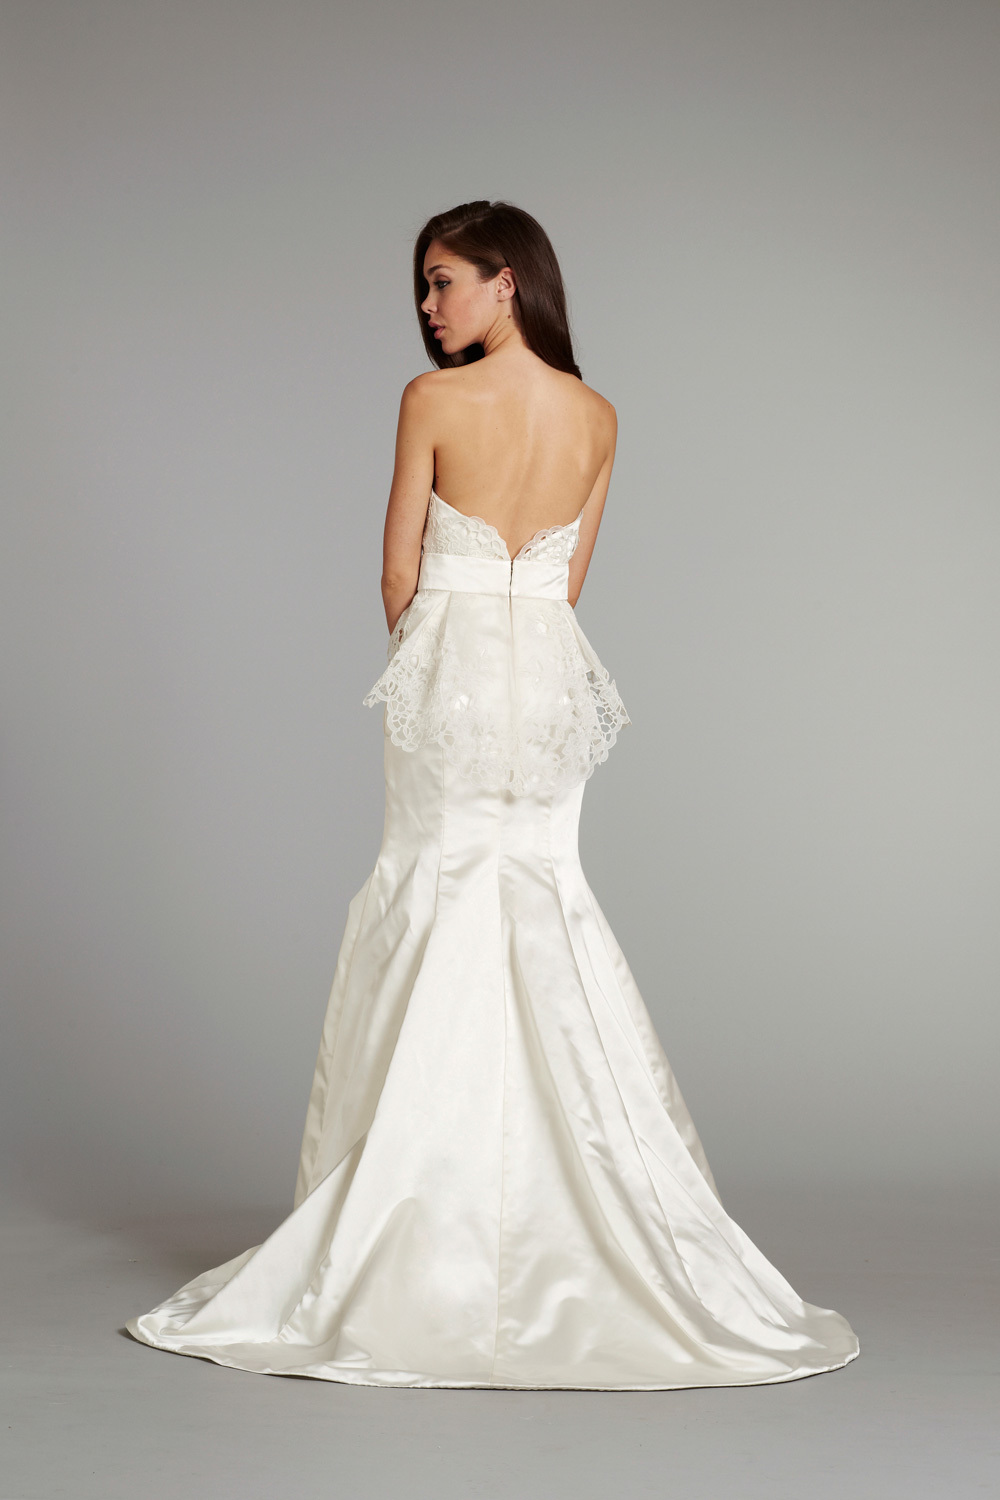 Bridal-gown-wedding-dress-jlm-hayley-paige-fall-2012-sloane-back.full